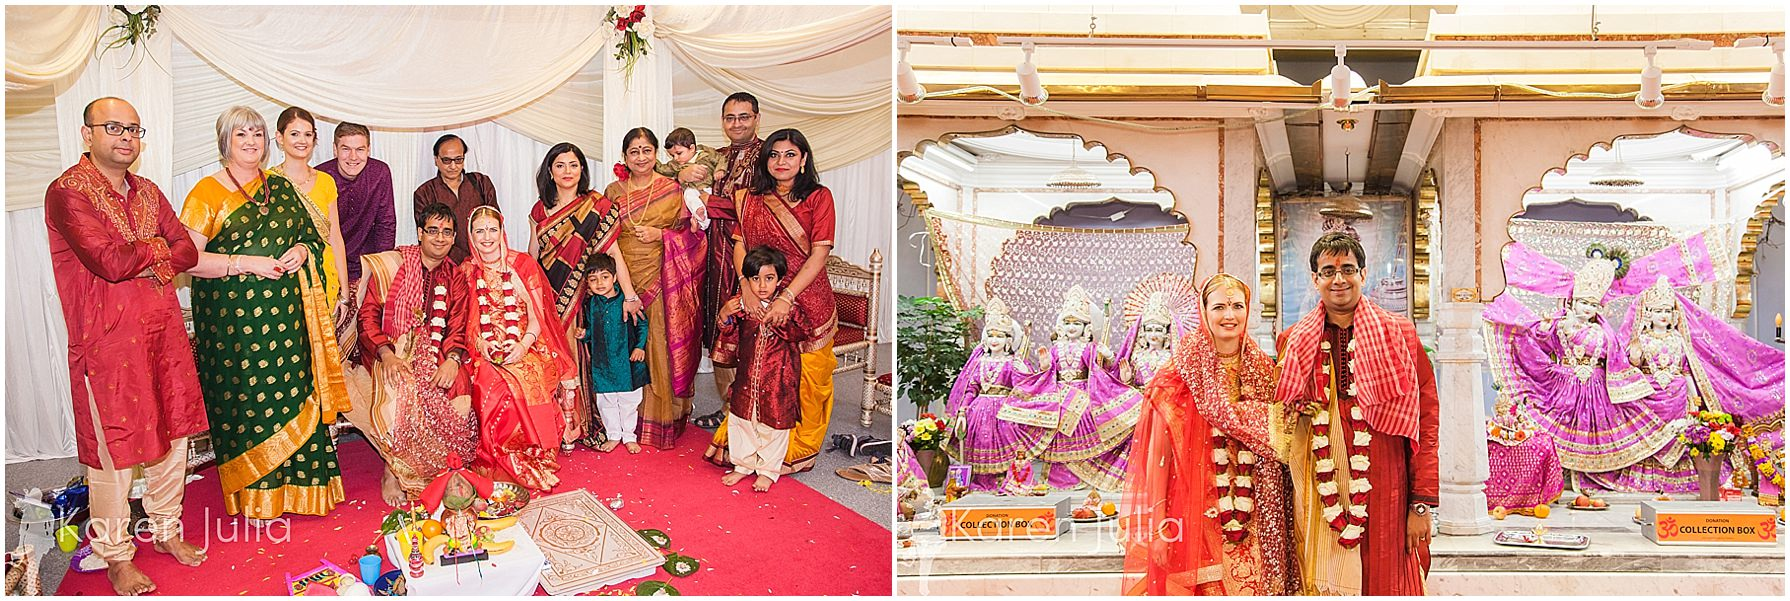 Gita-Bhavan-Hindu-Temple-Wedding-Photography-10